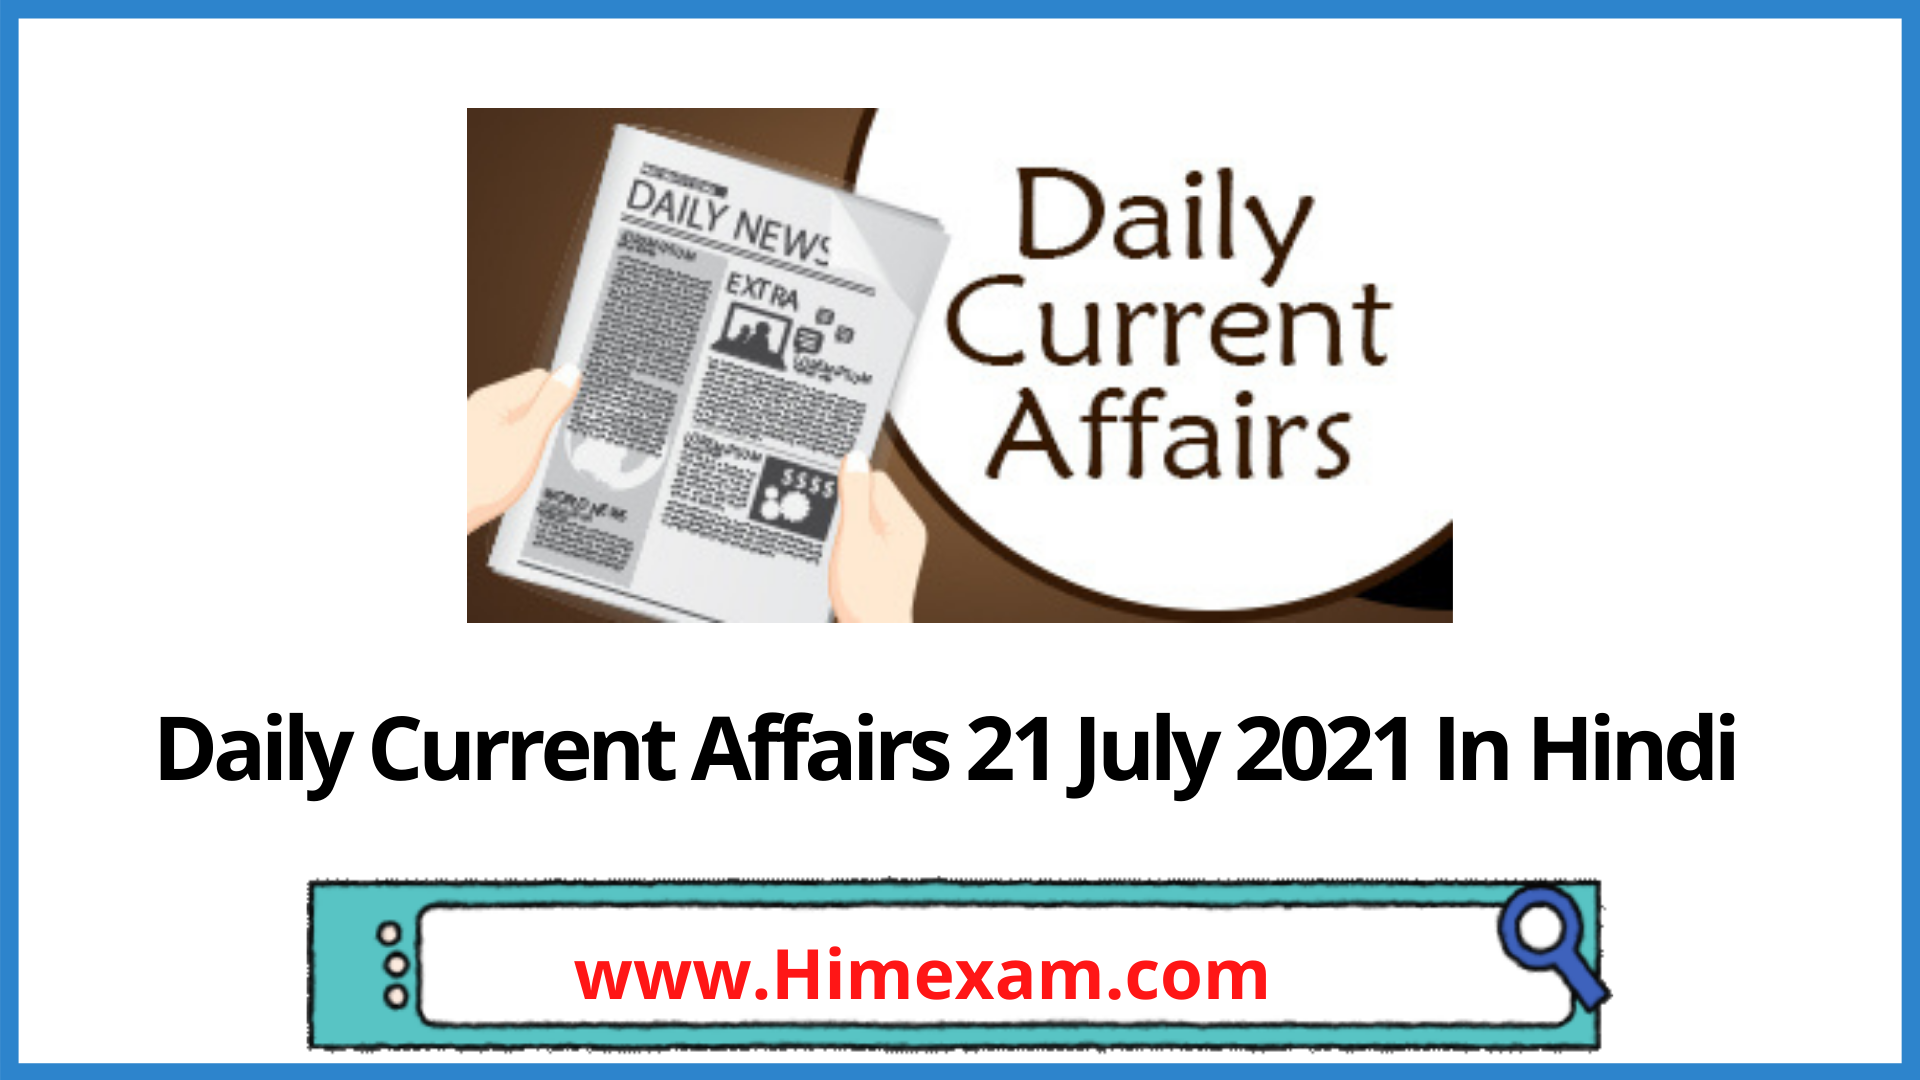 Daily Current Affairs 21 July 2021 In Hindi